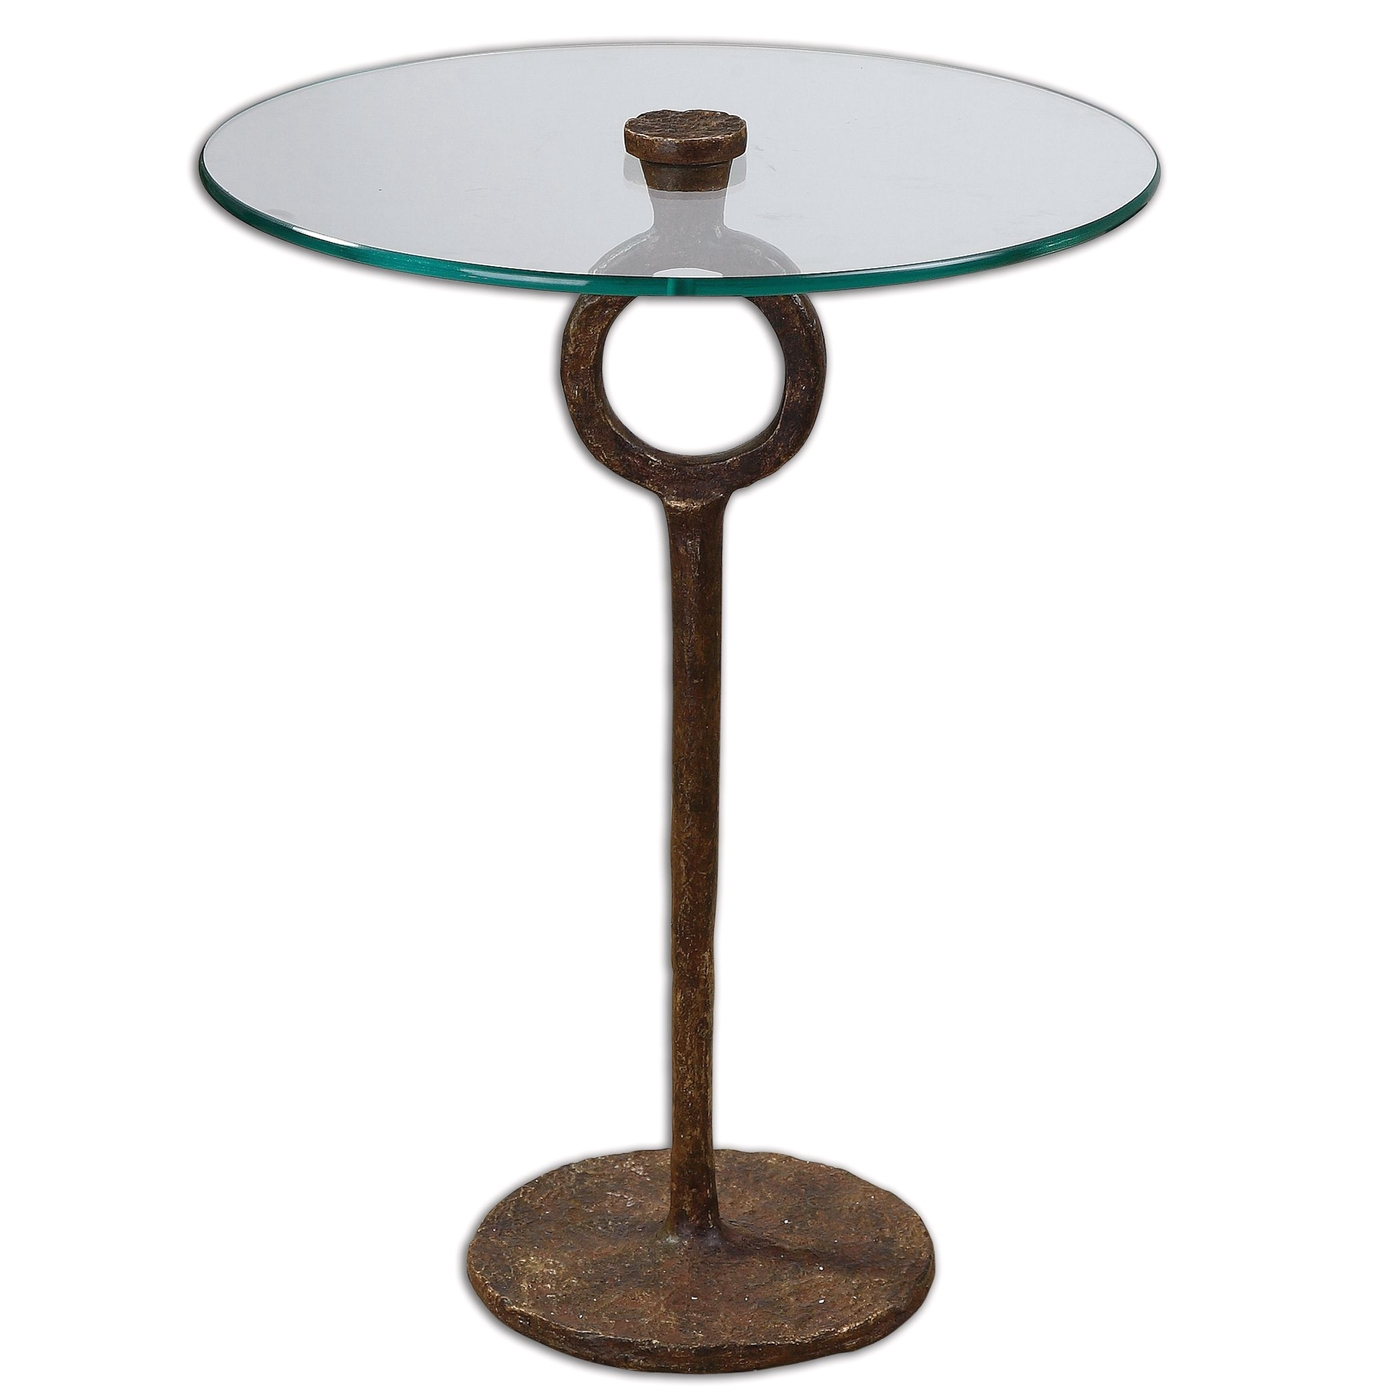 Diogo cast iron base glass top accent table 24336 for Cast iron table with glass top